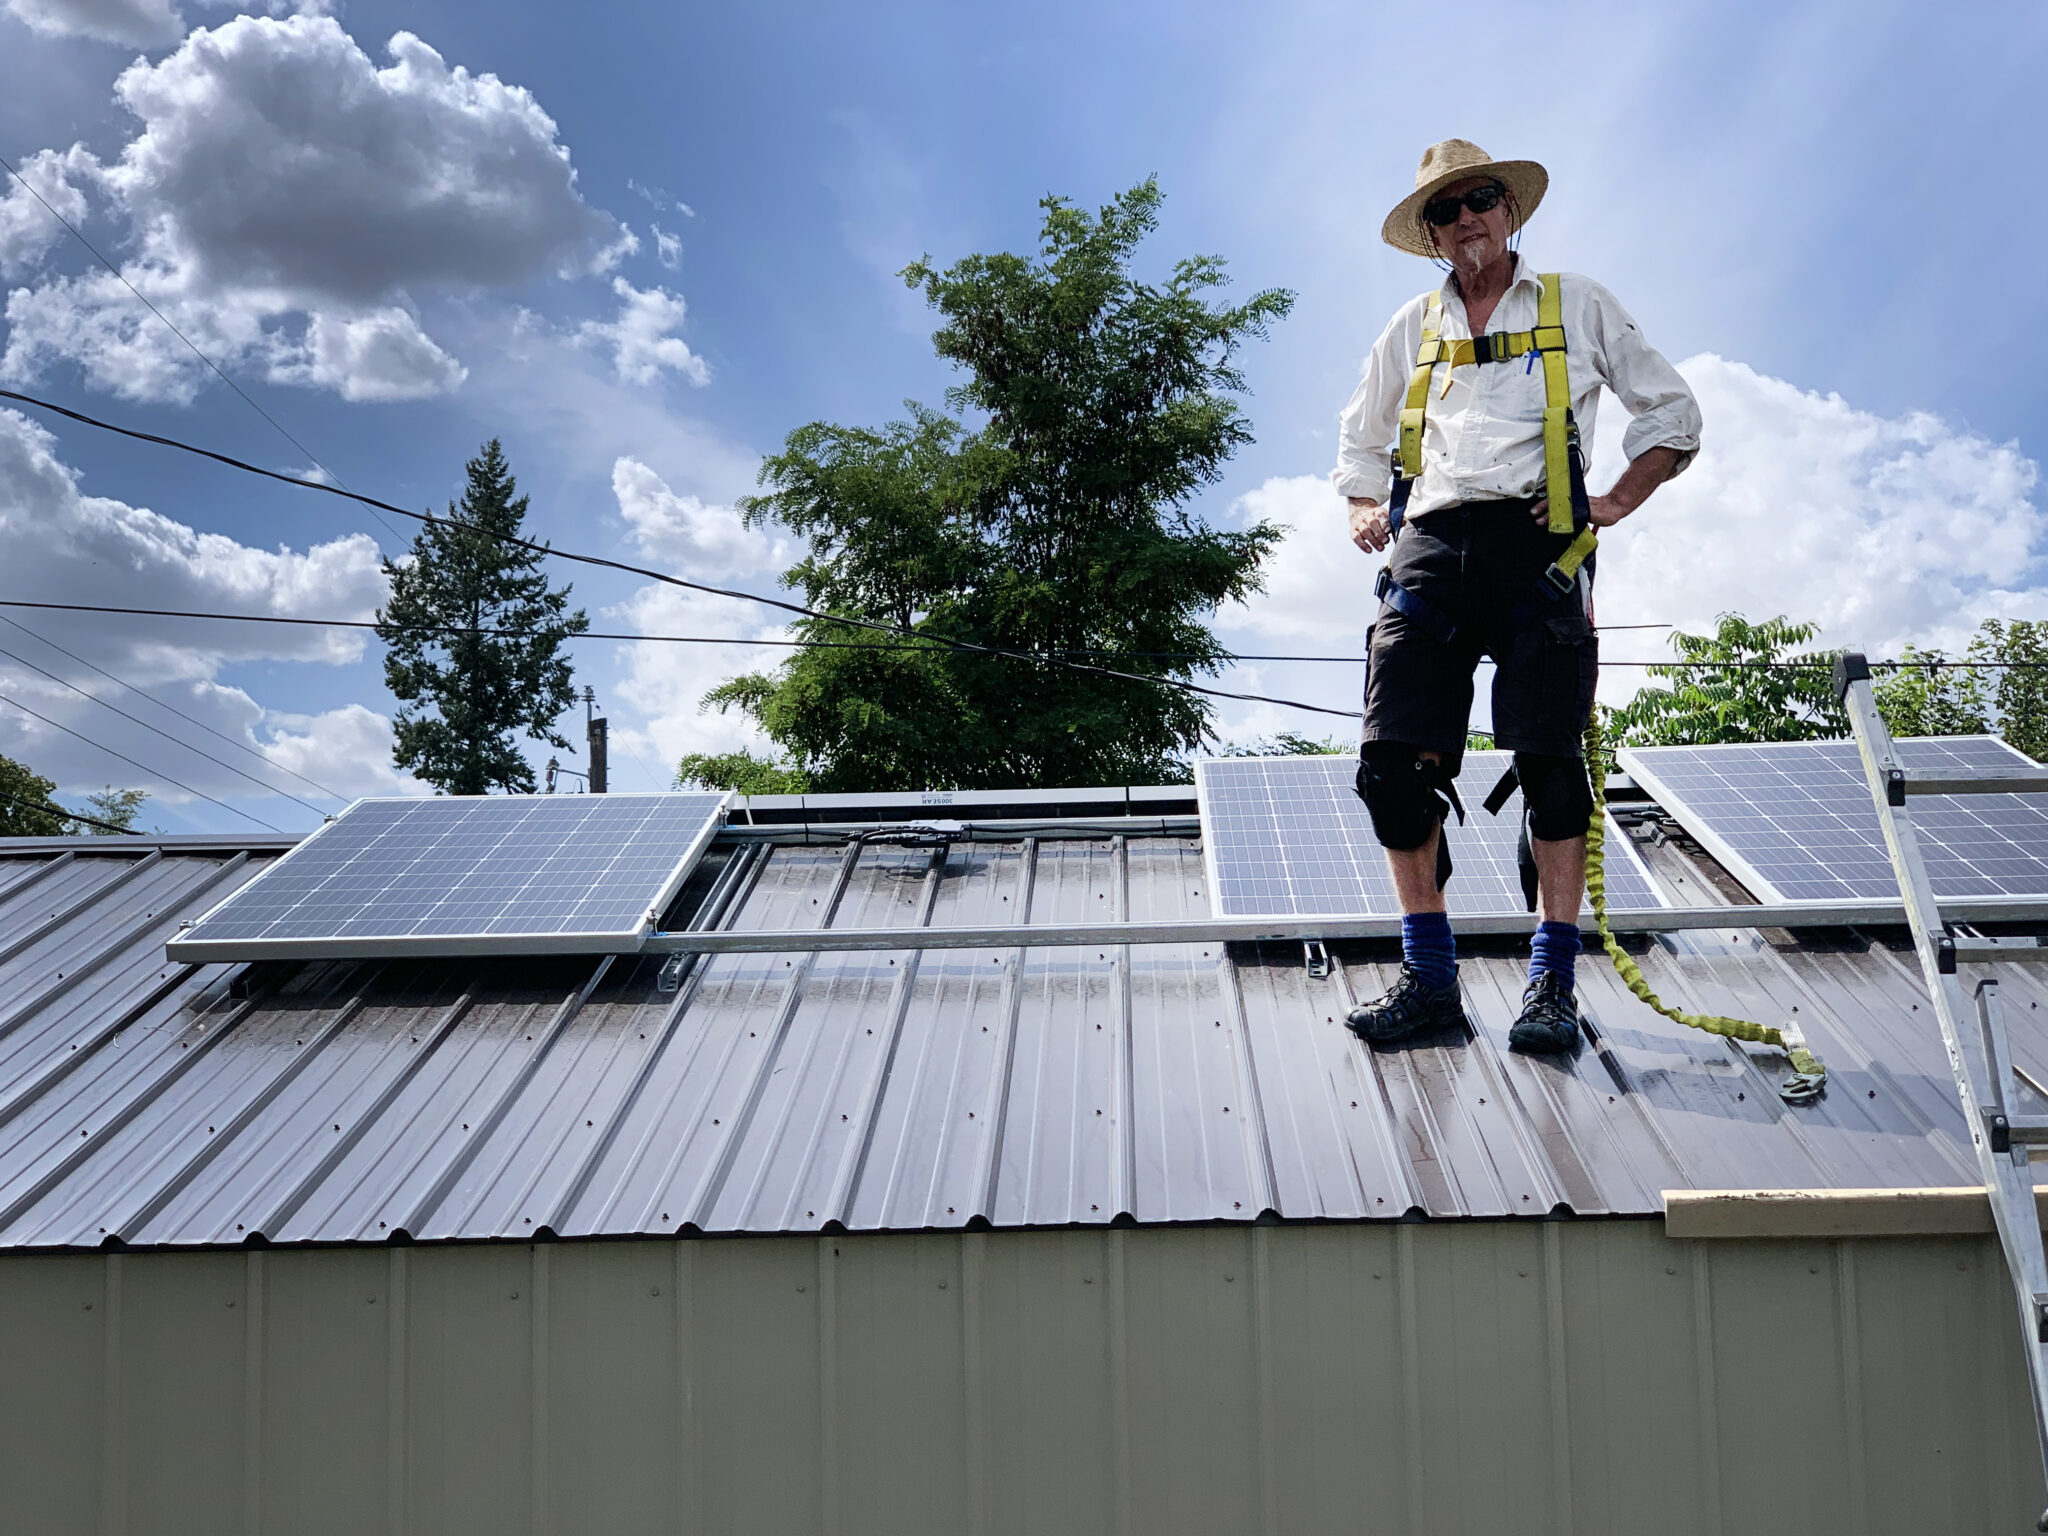 Eco Depot owner and solar installer standing on a roof with solar panels.